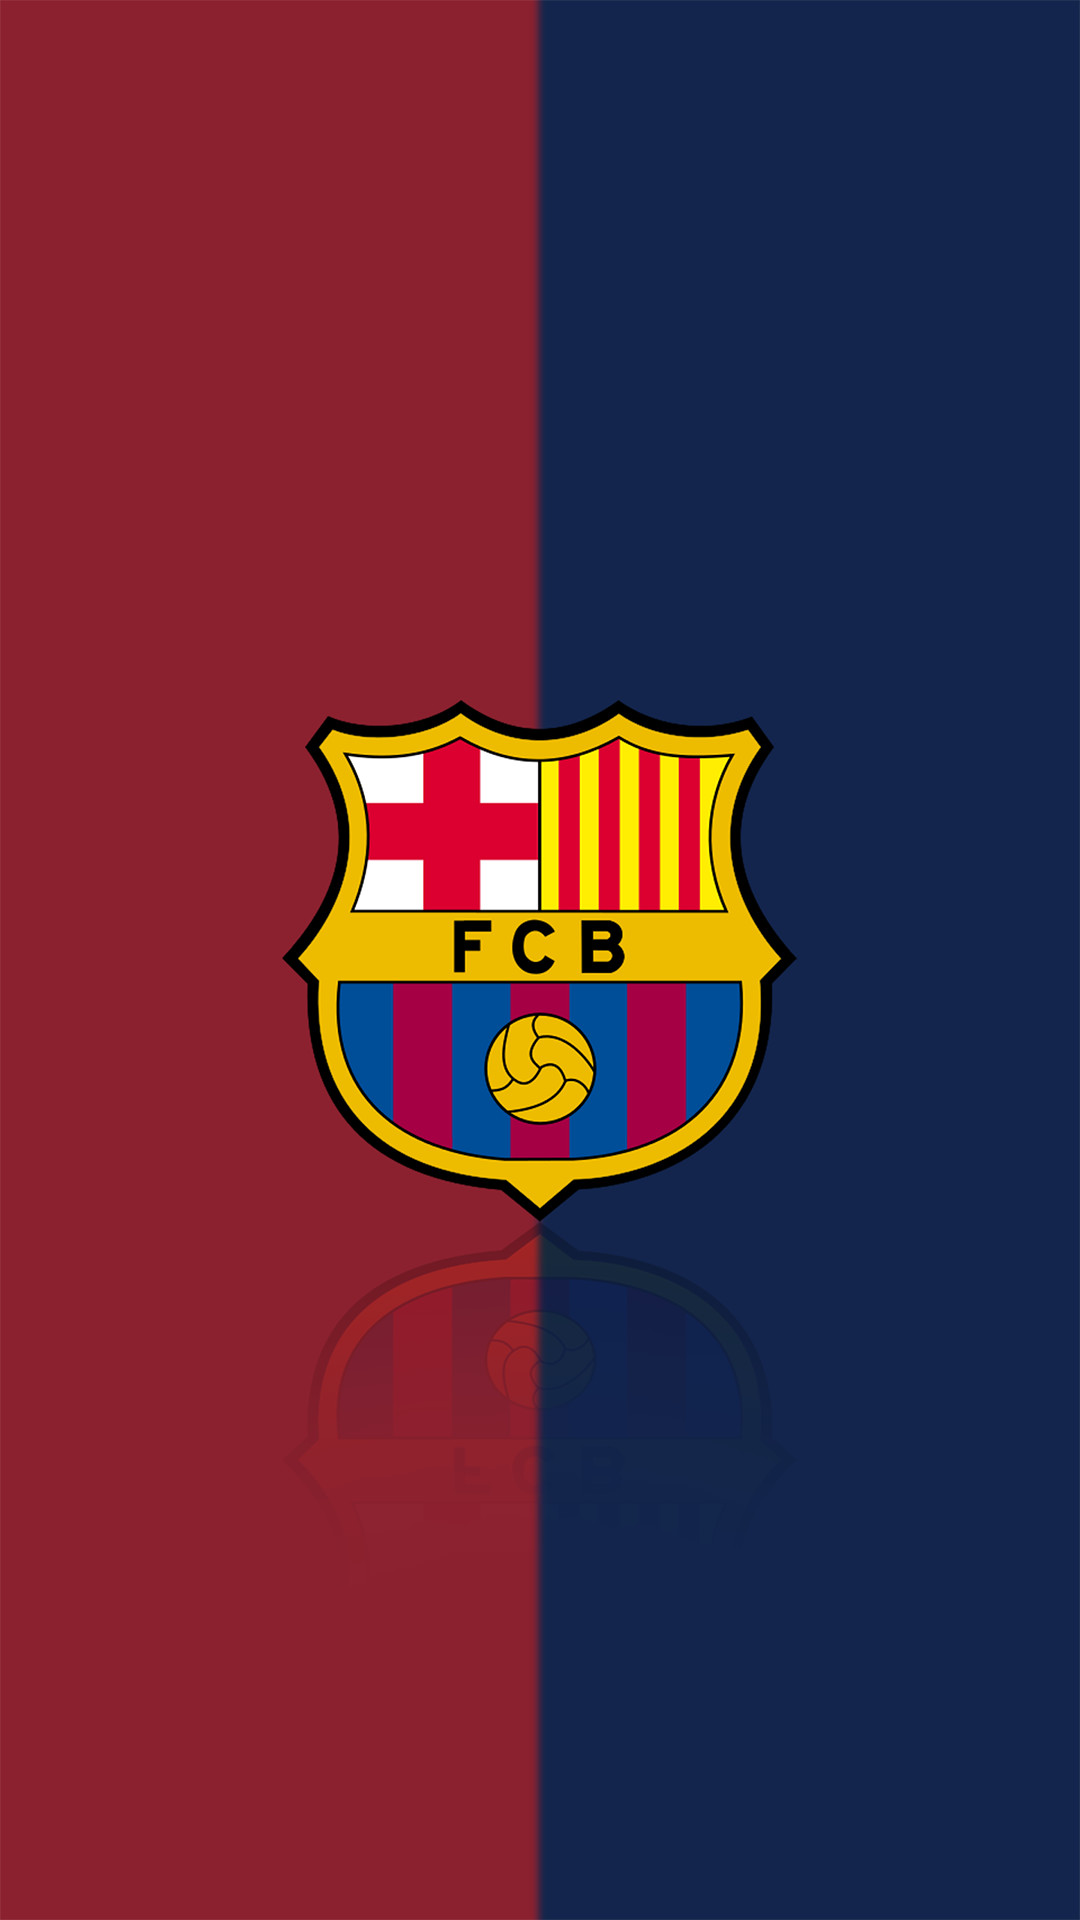 Res: 1080x1920, FC Barcelona Wallpaper iPhone 6S by lirking20 on DeviantArt